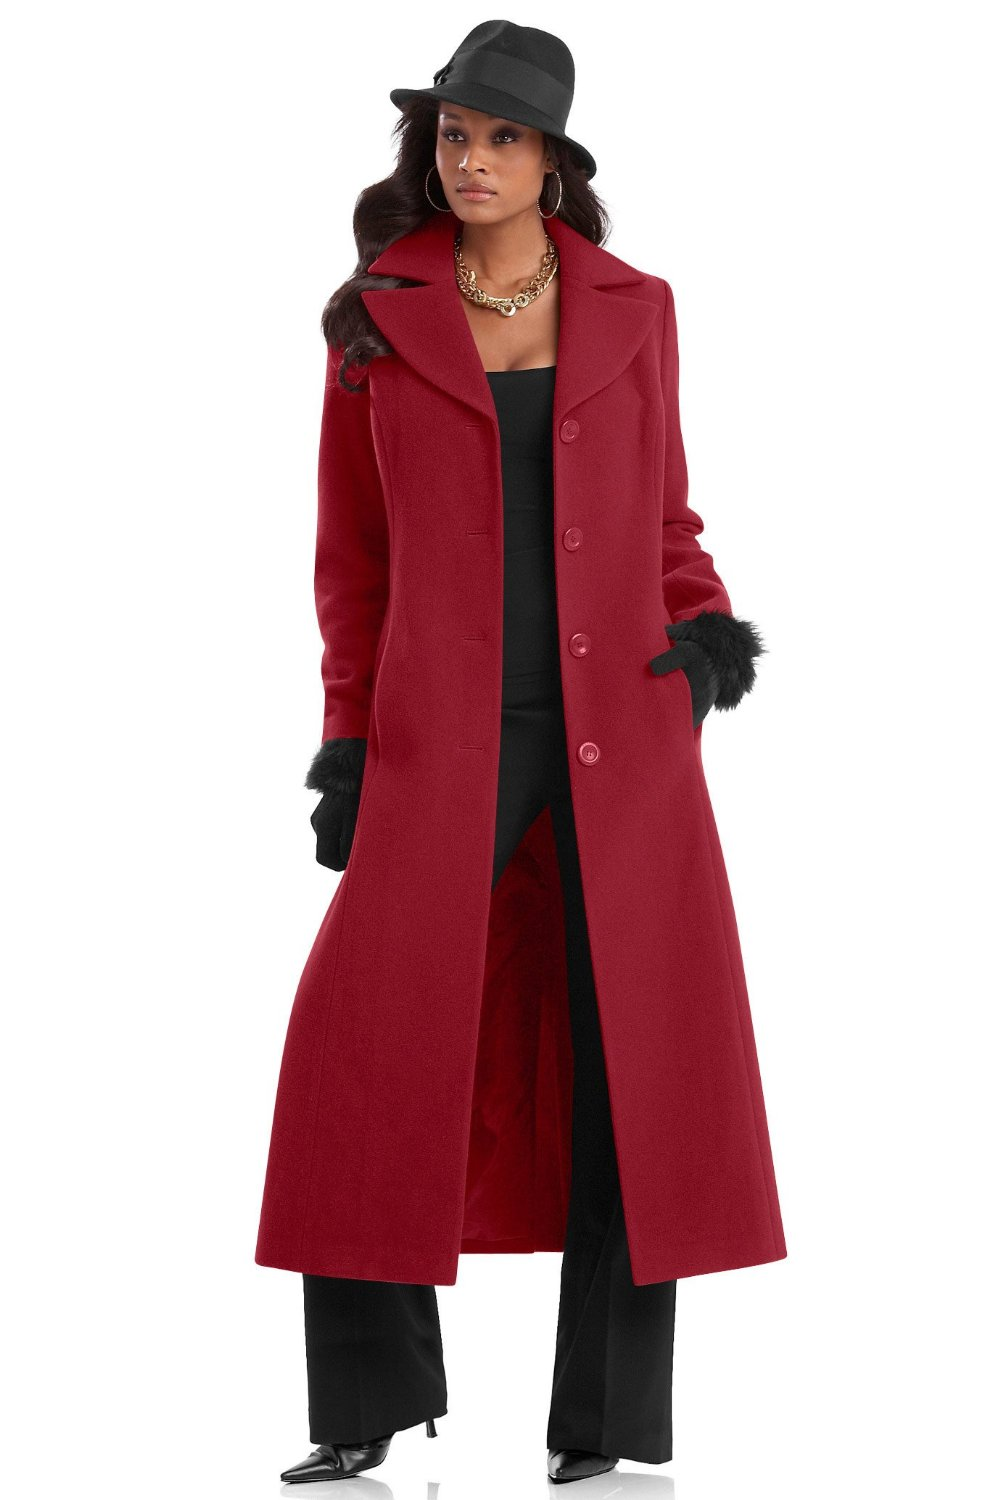 The Best Red Dress: Red Winter Coats and Jackets